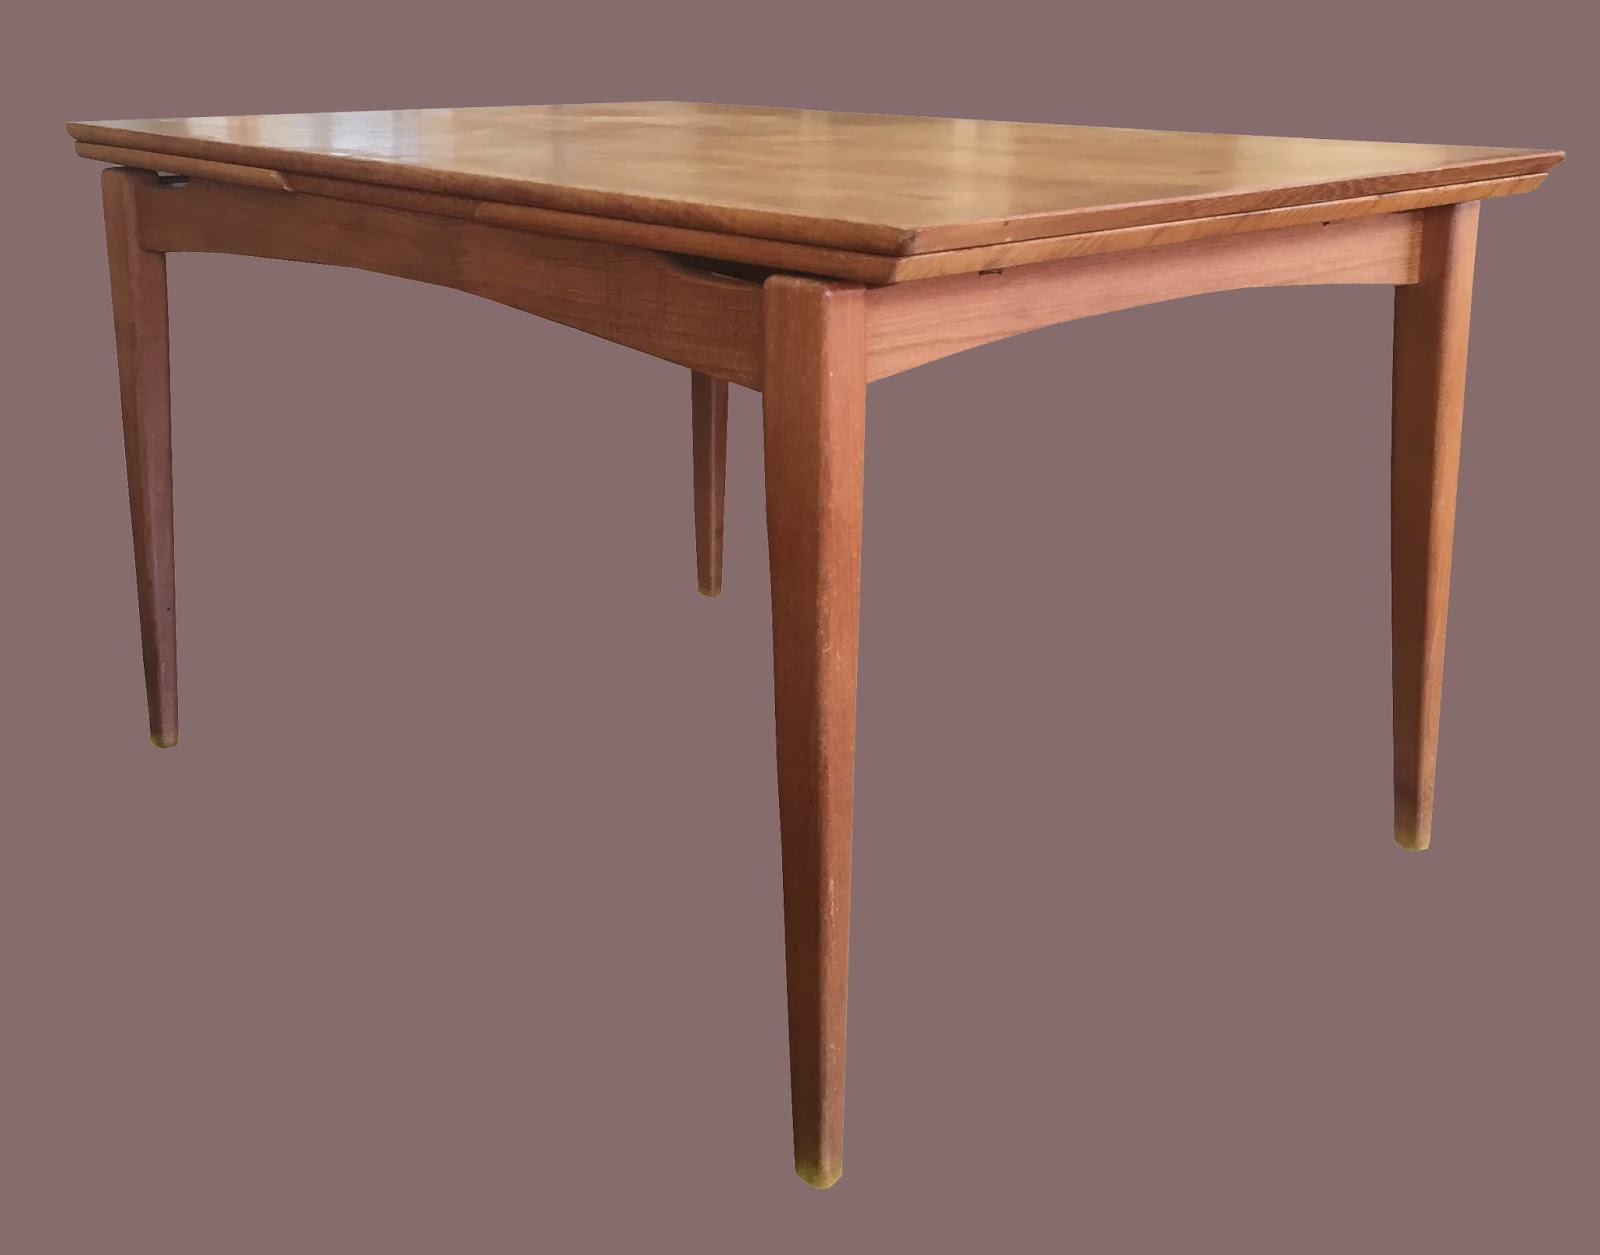 Uhuru furniture collectibles vintage teak dining table for Built in dining table